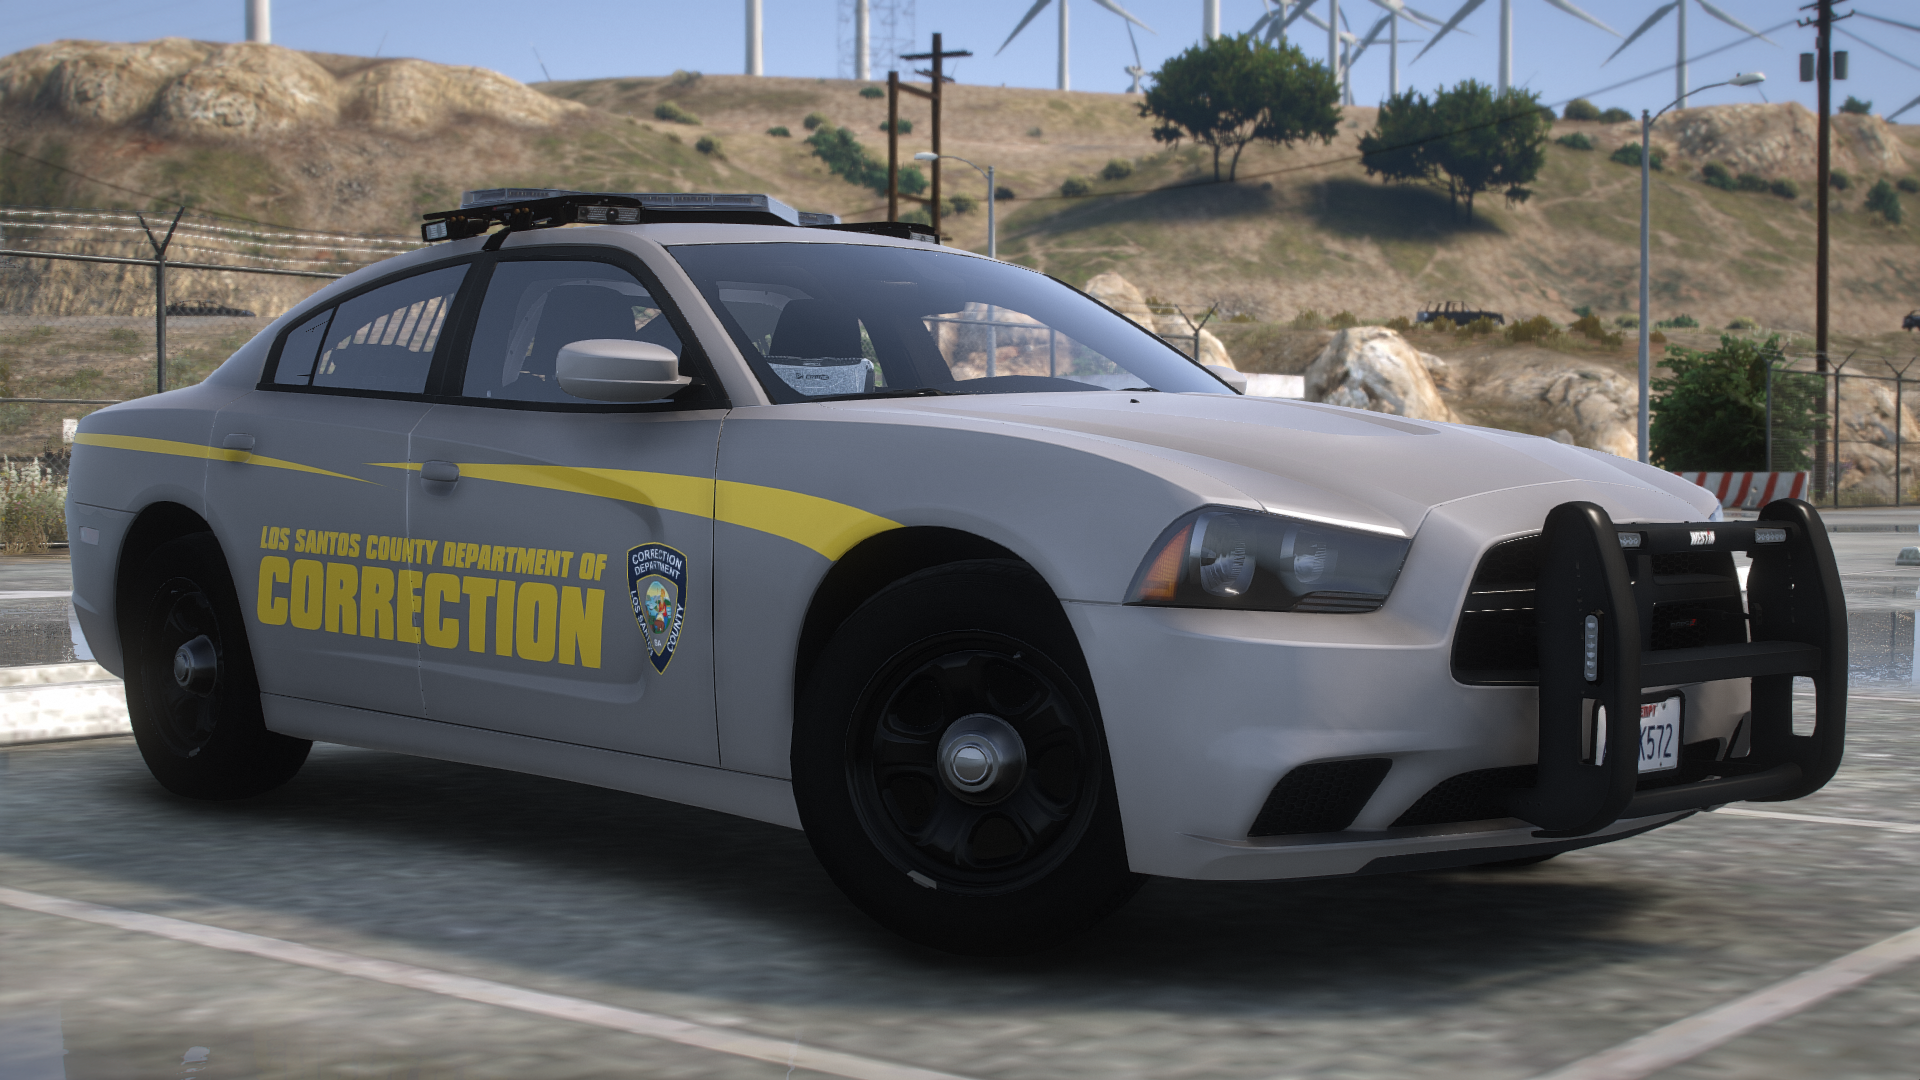 LS County Corrections Charger